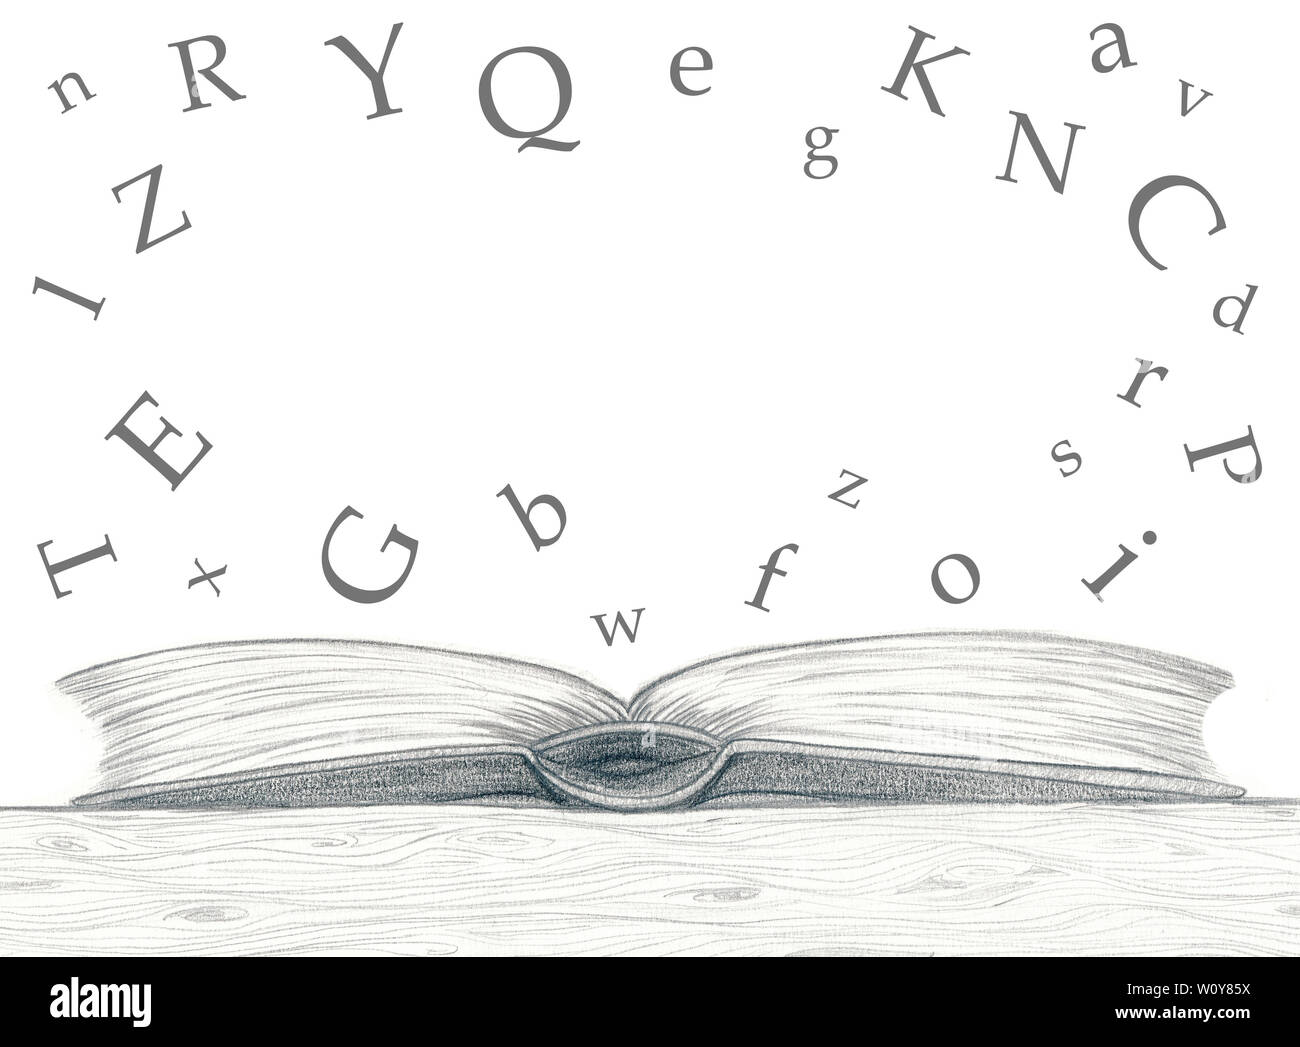 pencil sketch open book empty alphabetic characters white